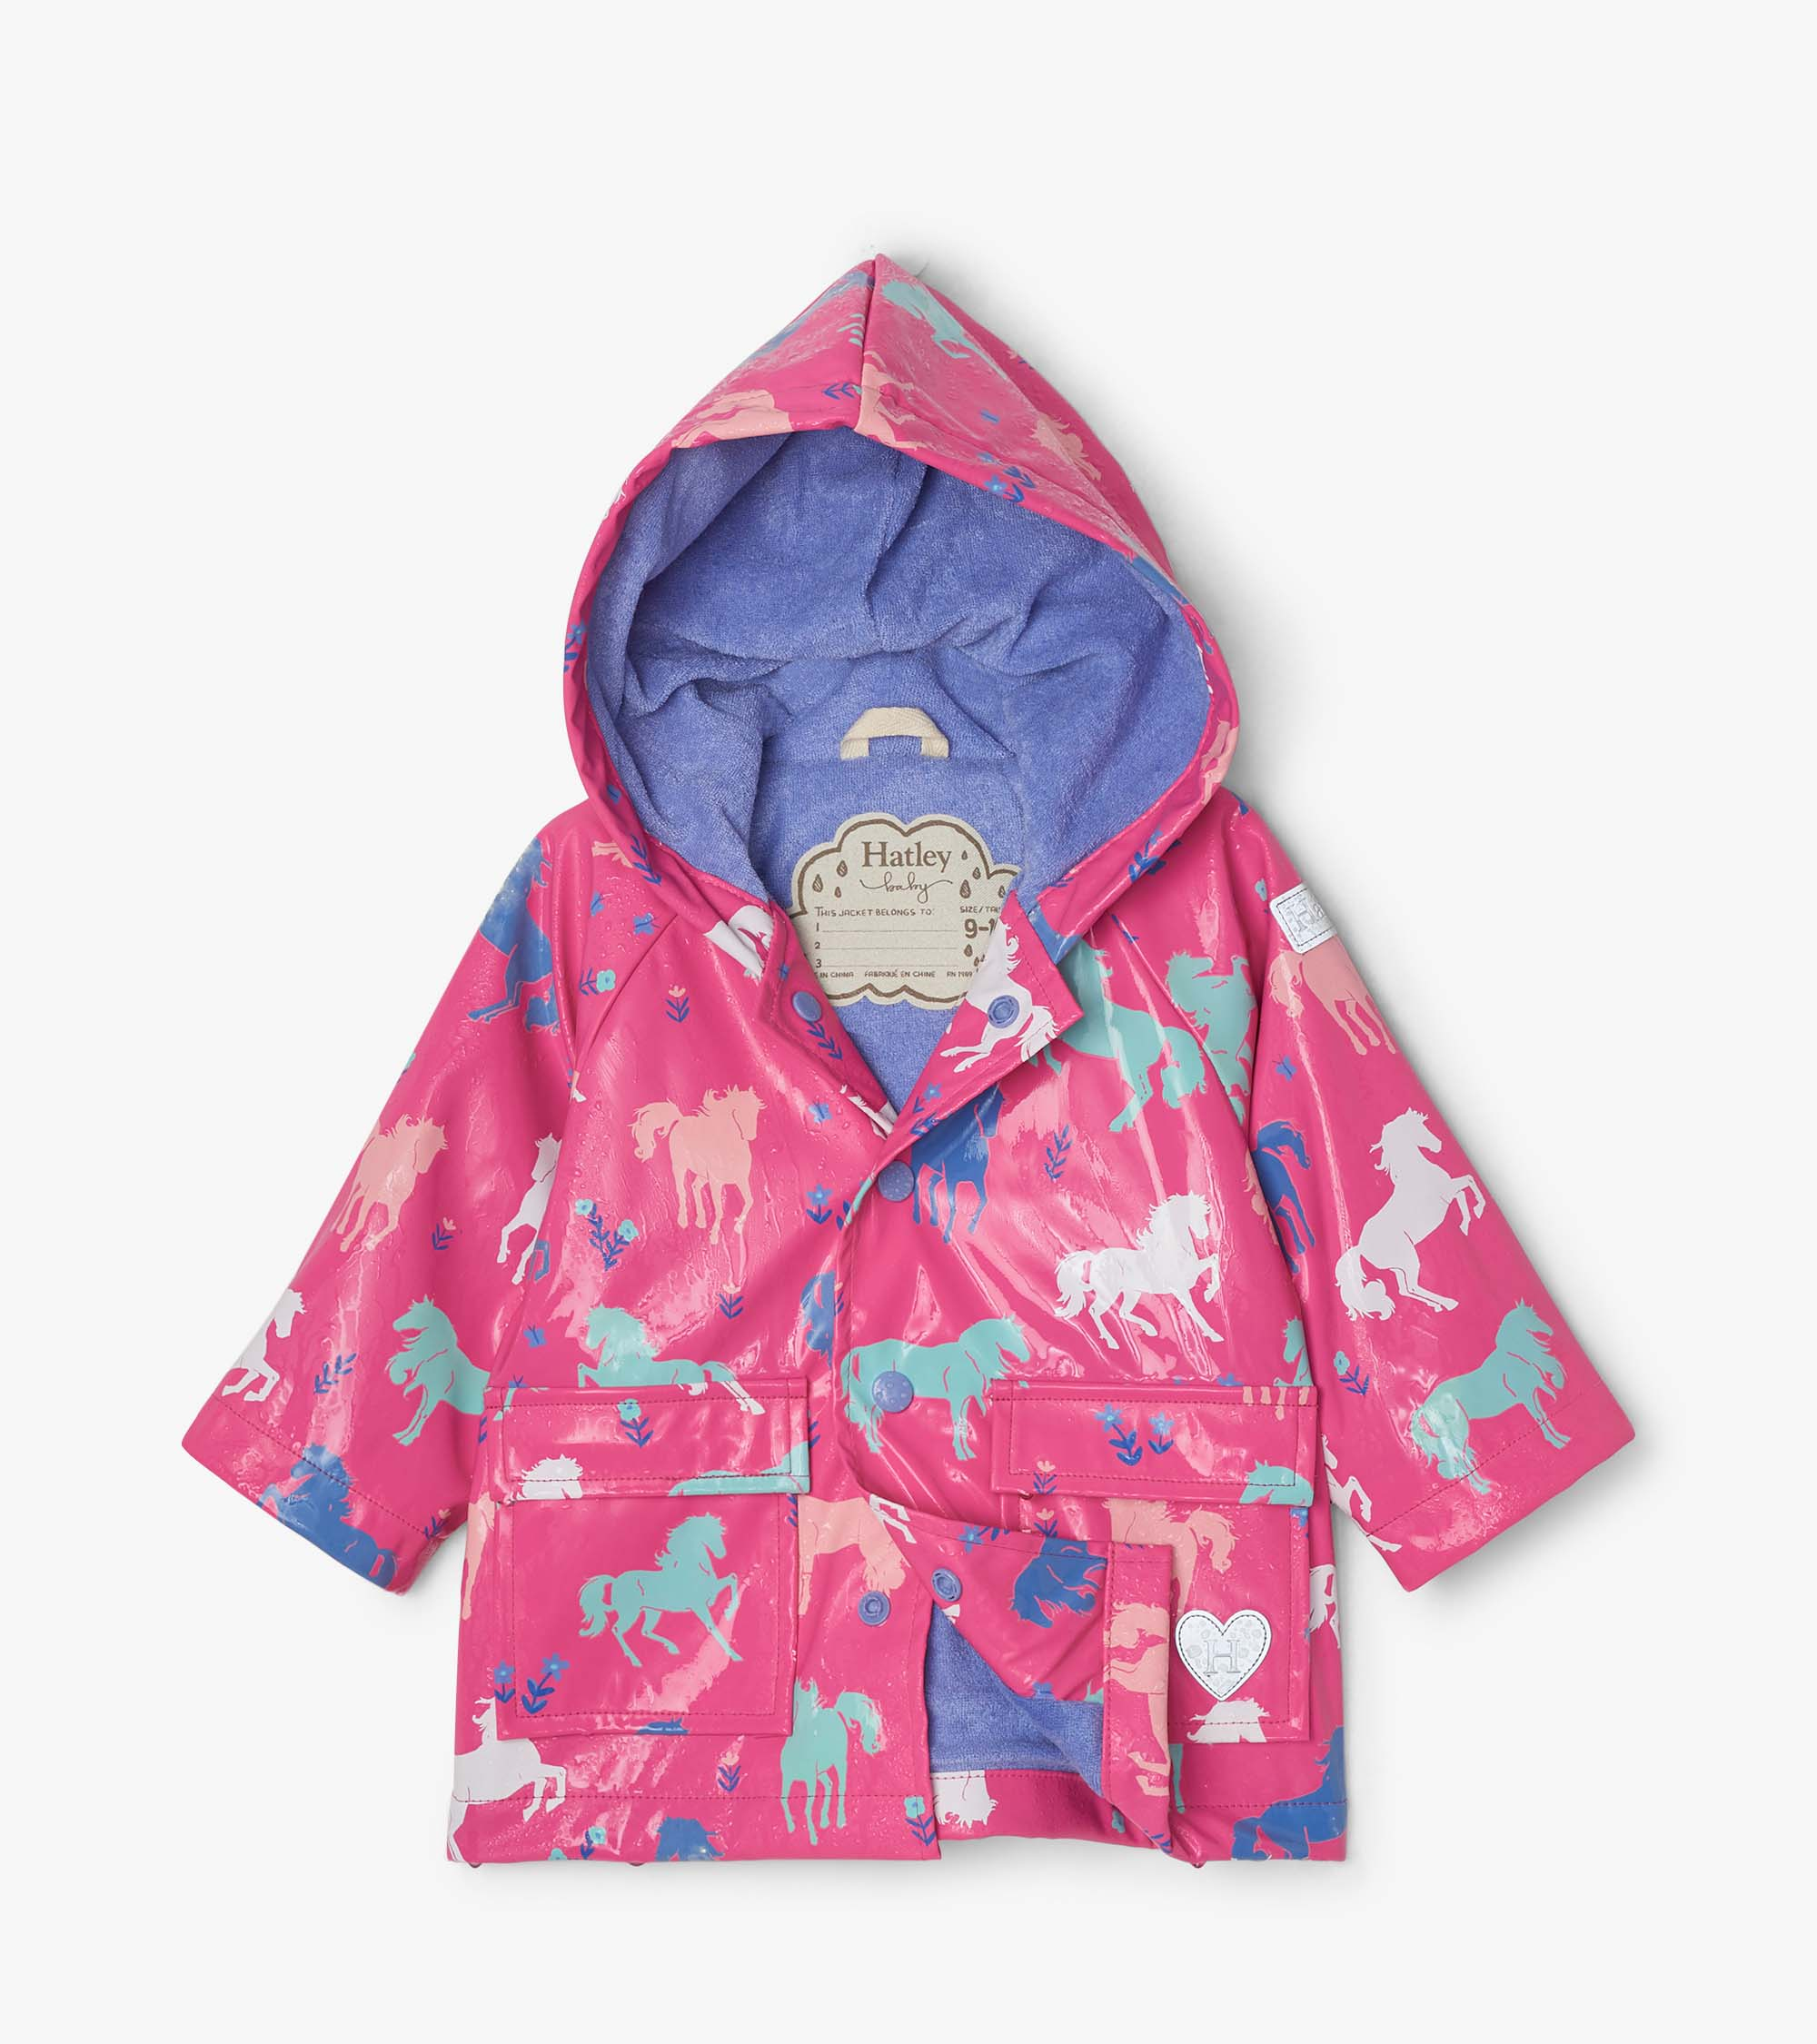 Hatley Painted Pasture Colour Changing Baby Raincoat